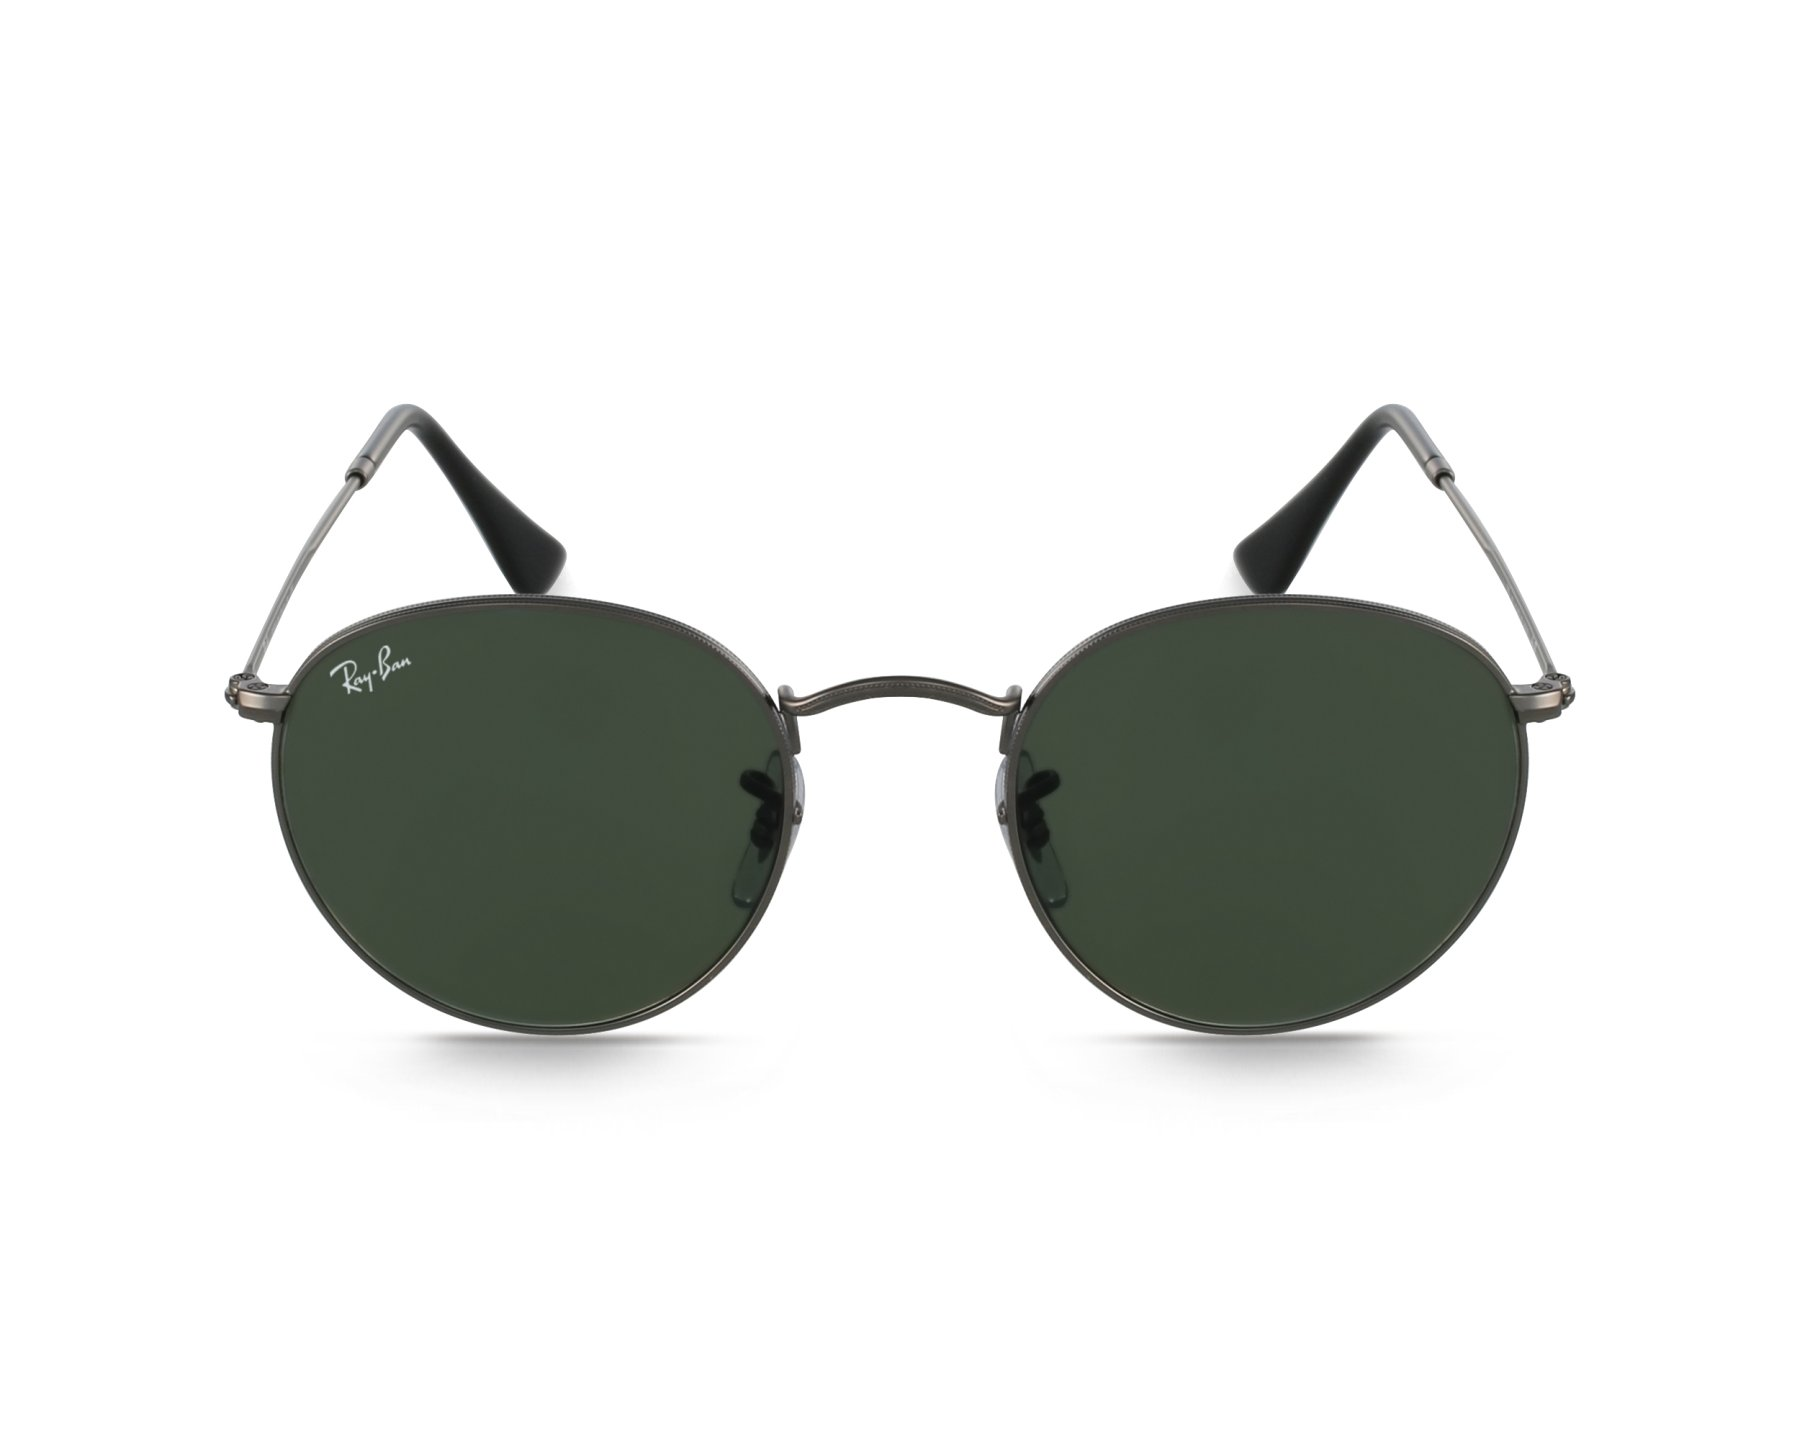 Sunglasses Ray-Ban RB-3447 029 50-21 Grey profile view 4a10059ebadc